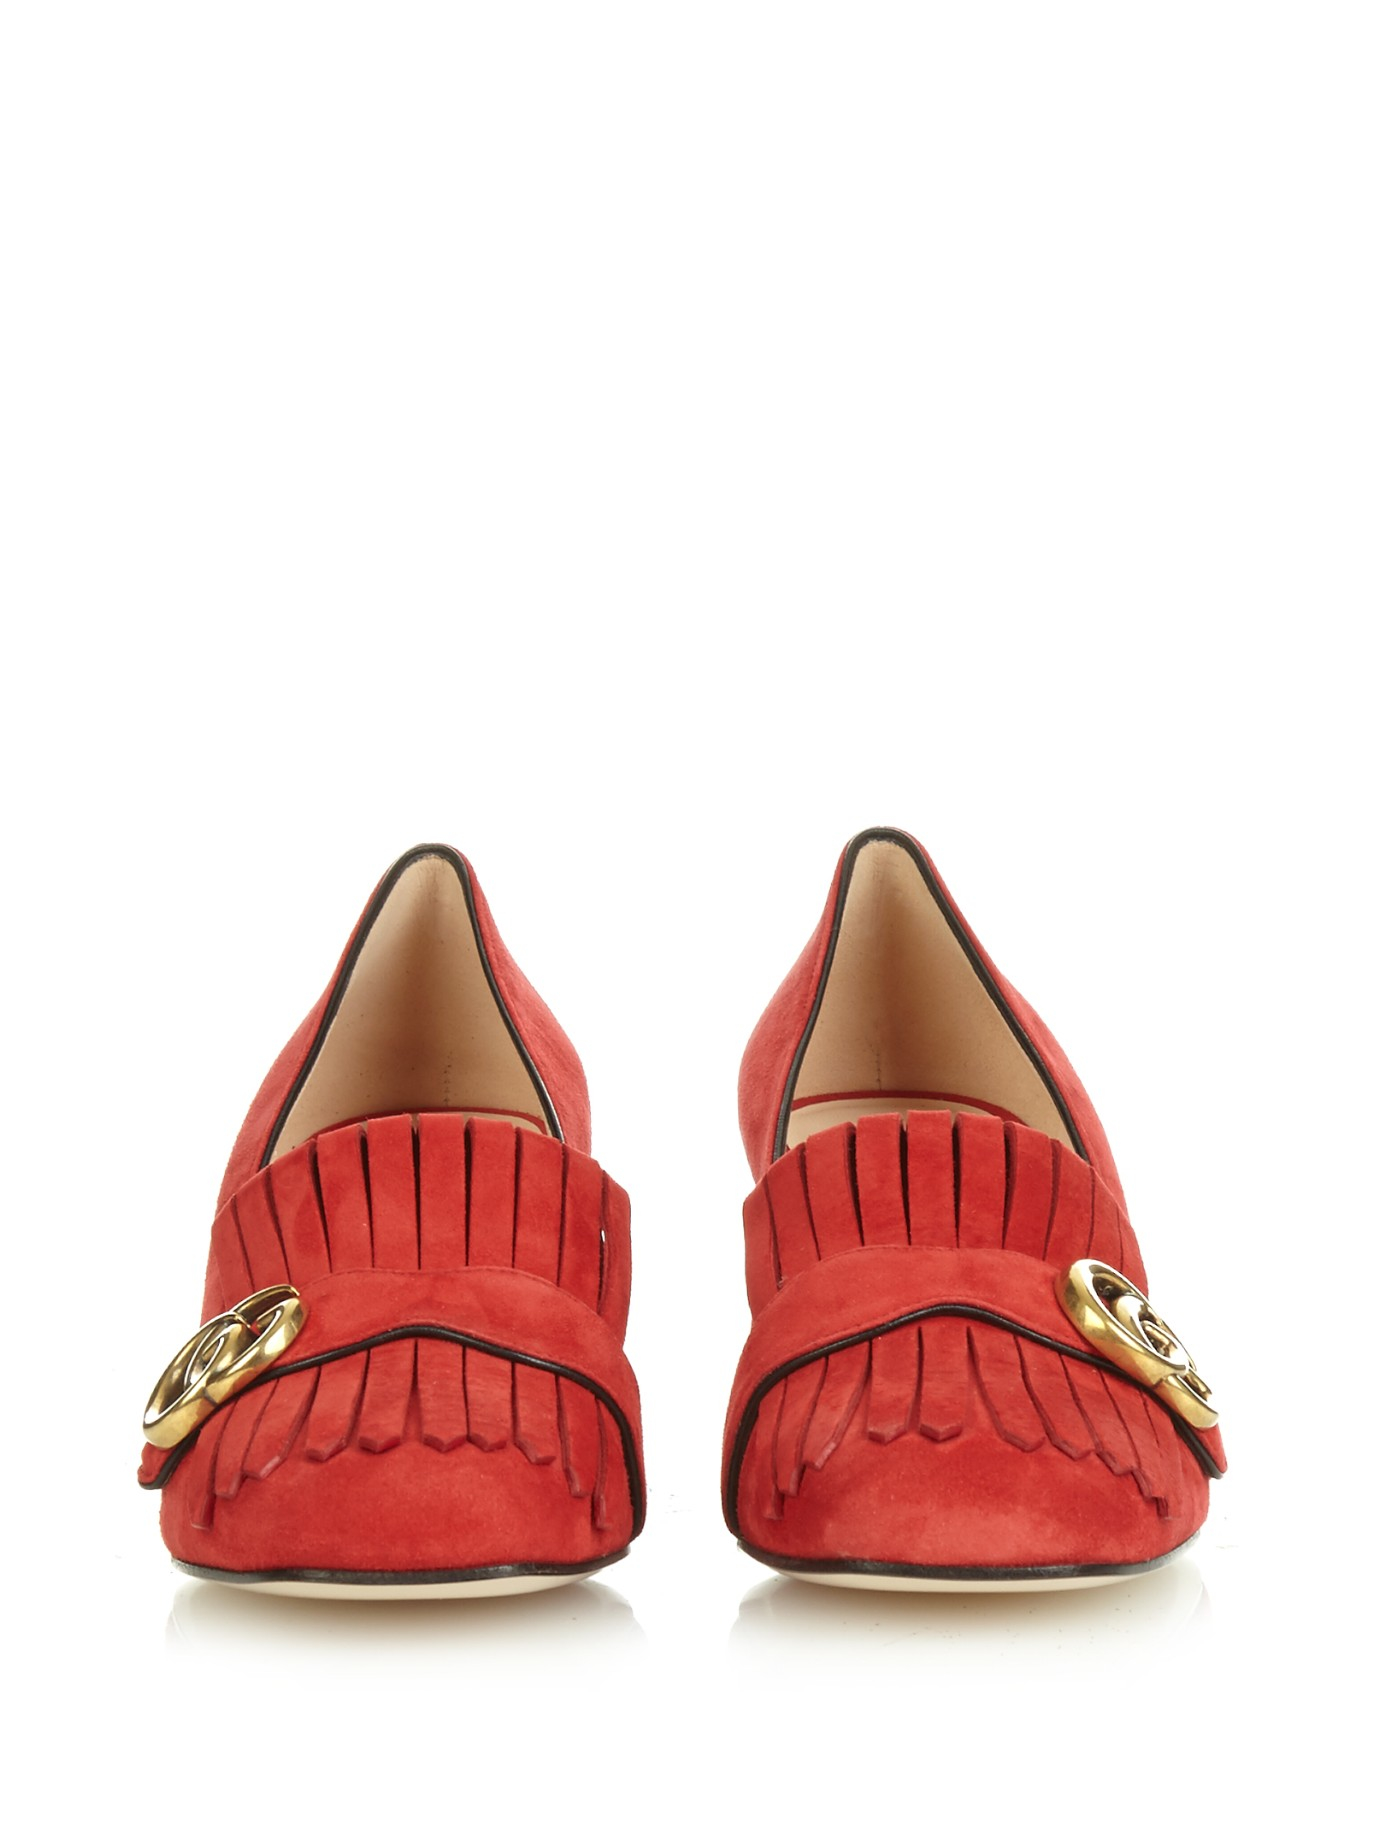 8d1b9cf0e4c Lyst - Gucci Marmont Fringed Suede Pumps in Red